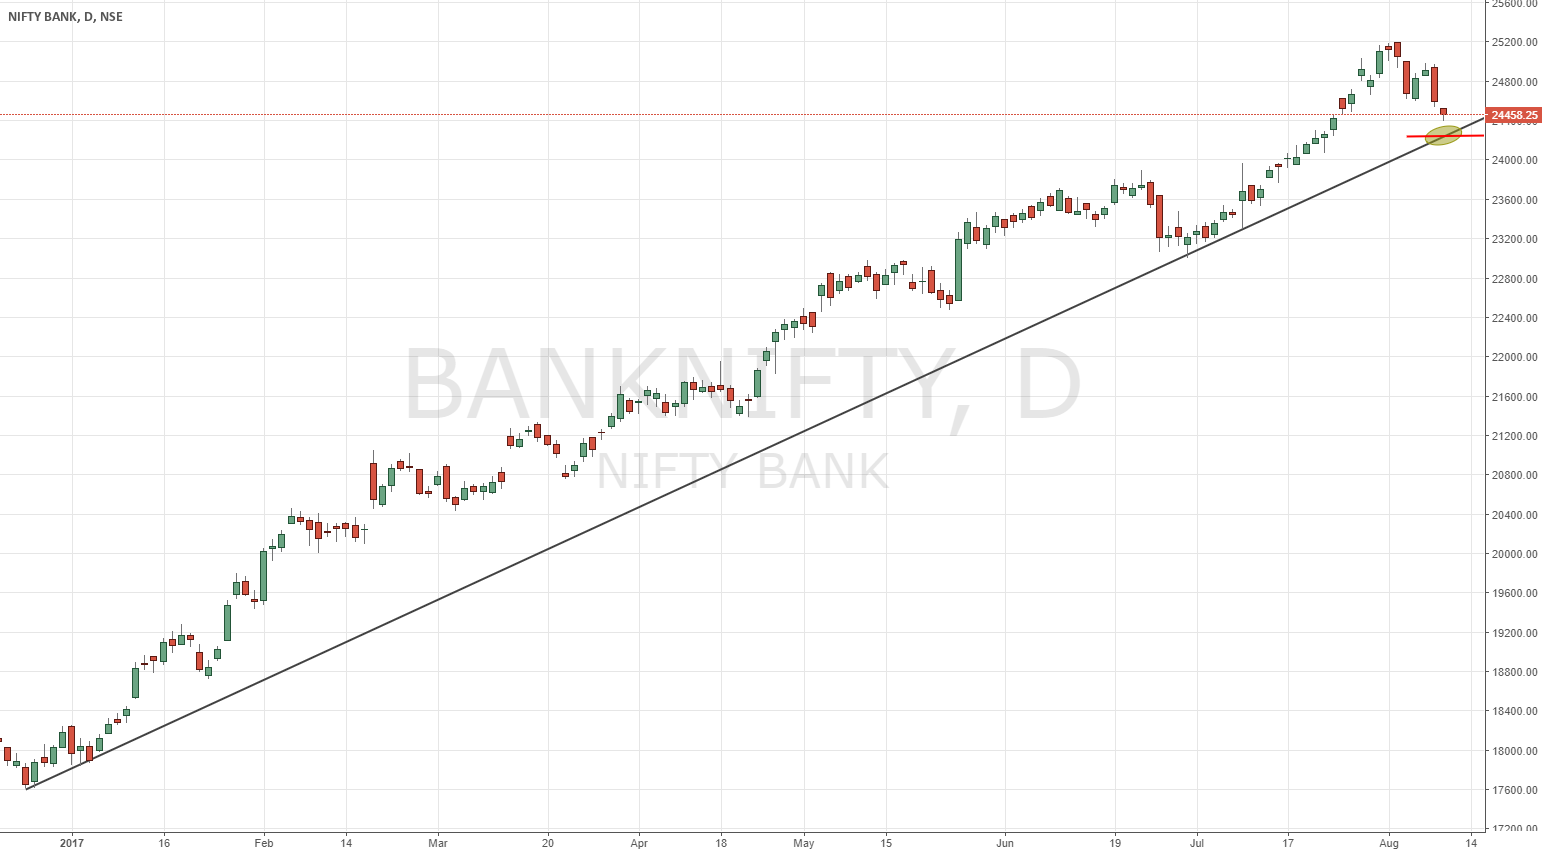 BANK NIFTY | Trendline support